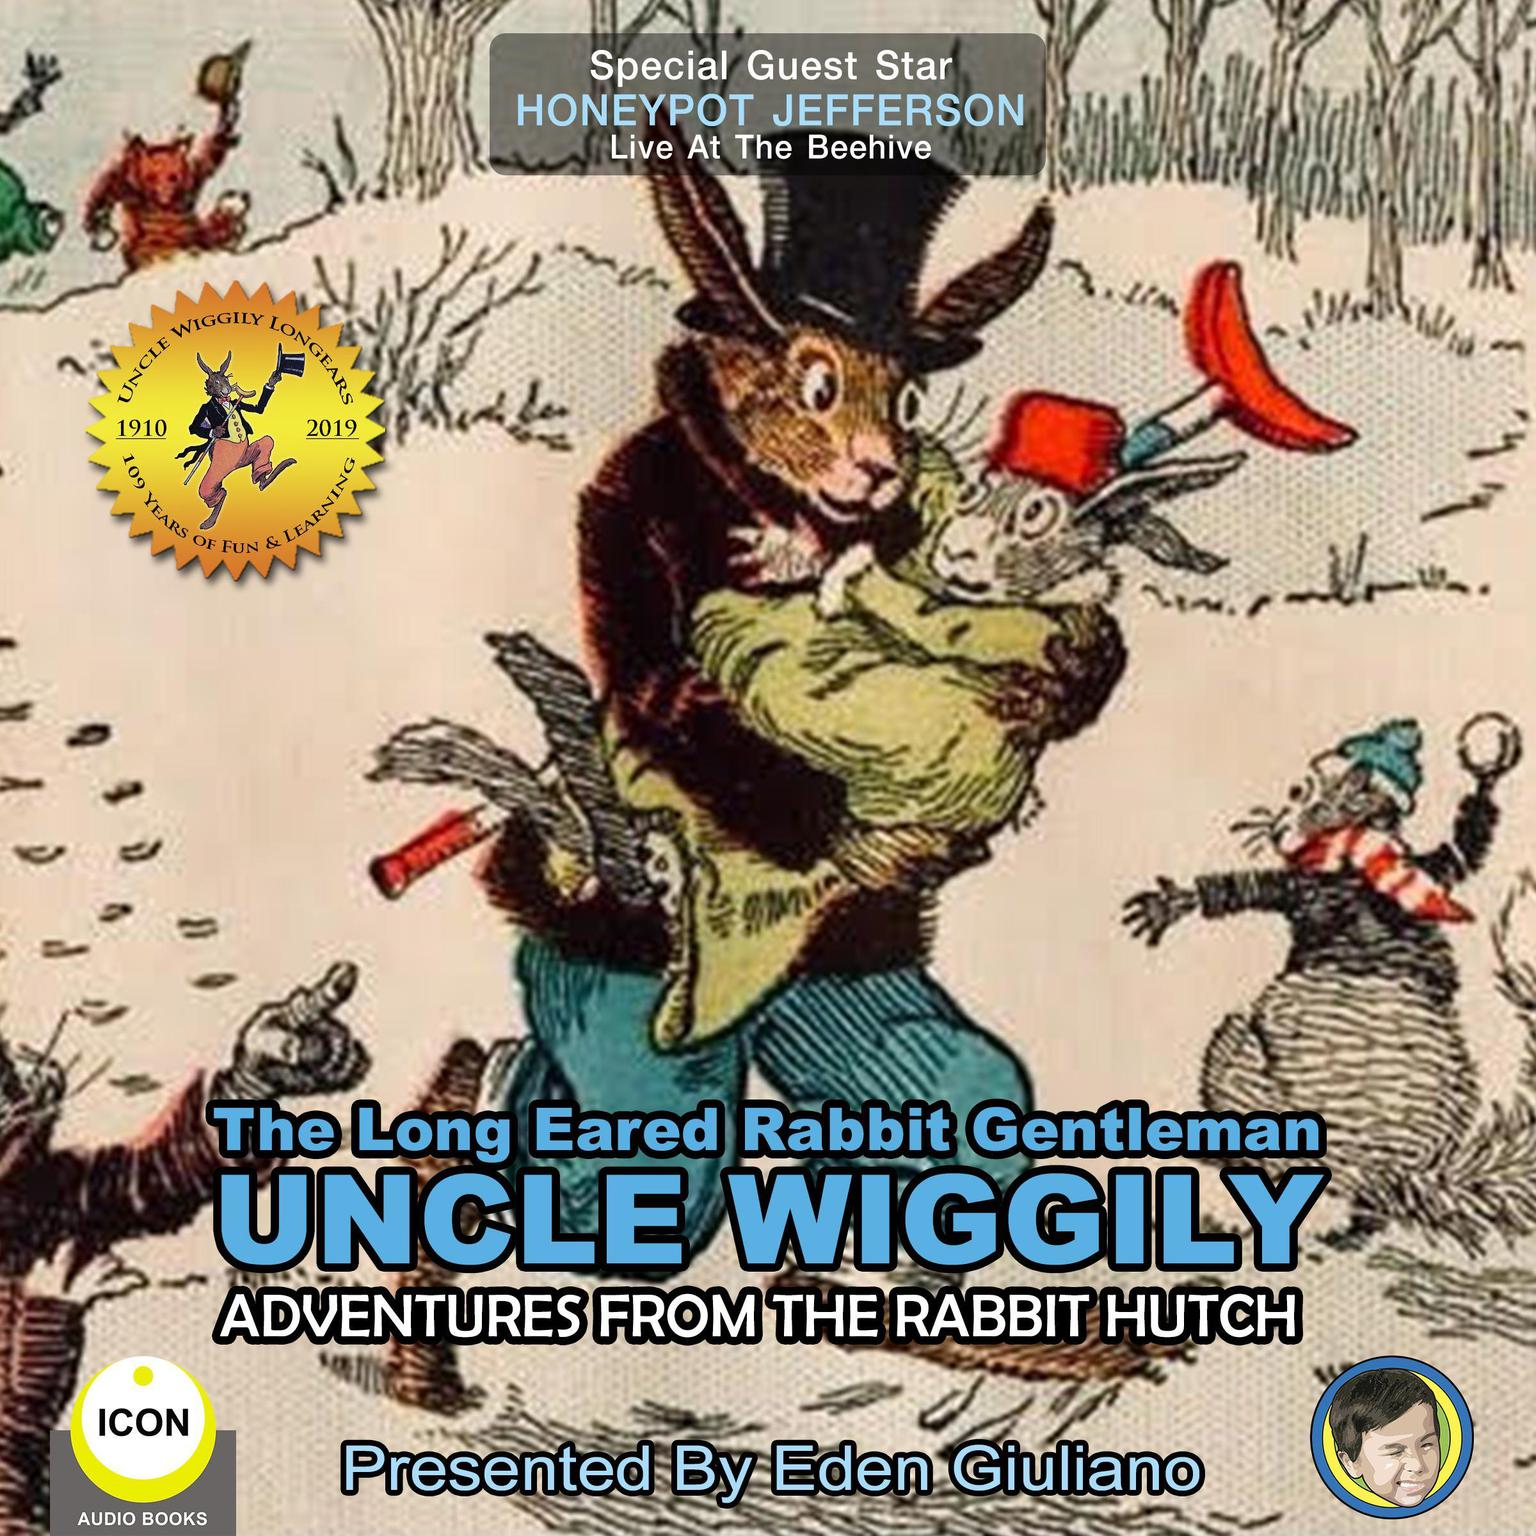 Printable The Long Eared Rabbit Gentleman Uncle Wiggily - Adventures From The Rabbit Hutch Audiobook Cover Art